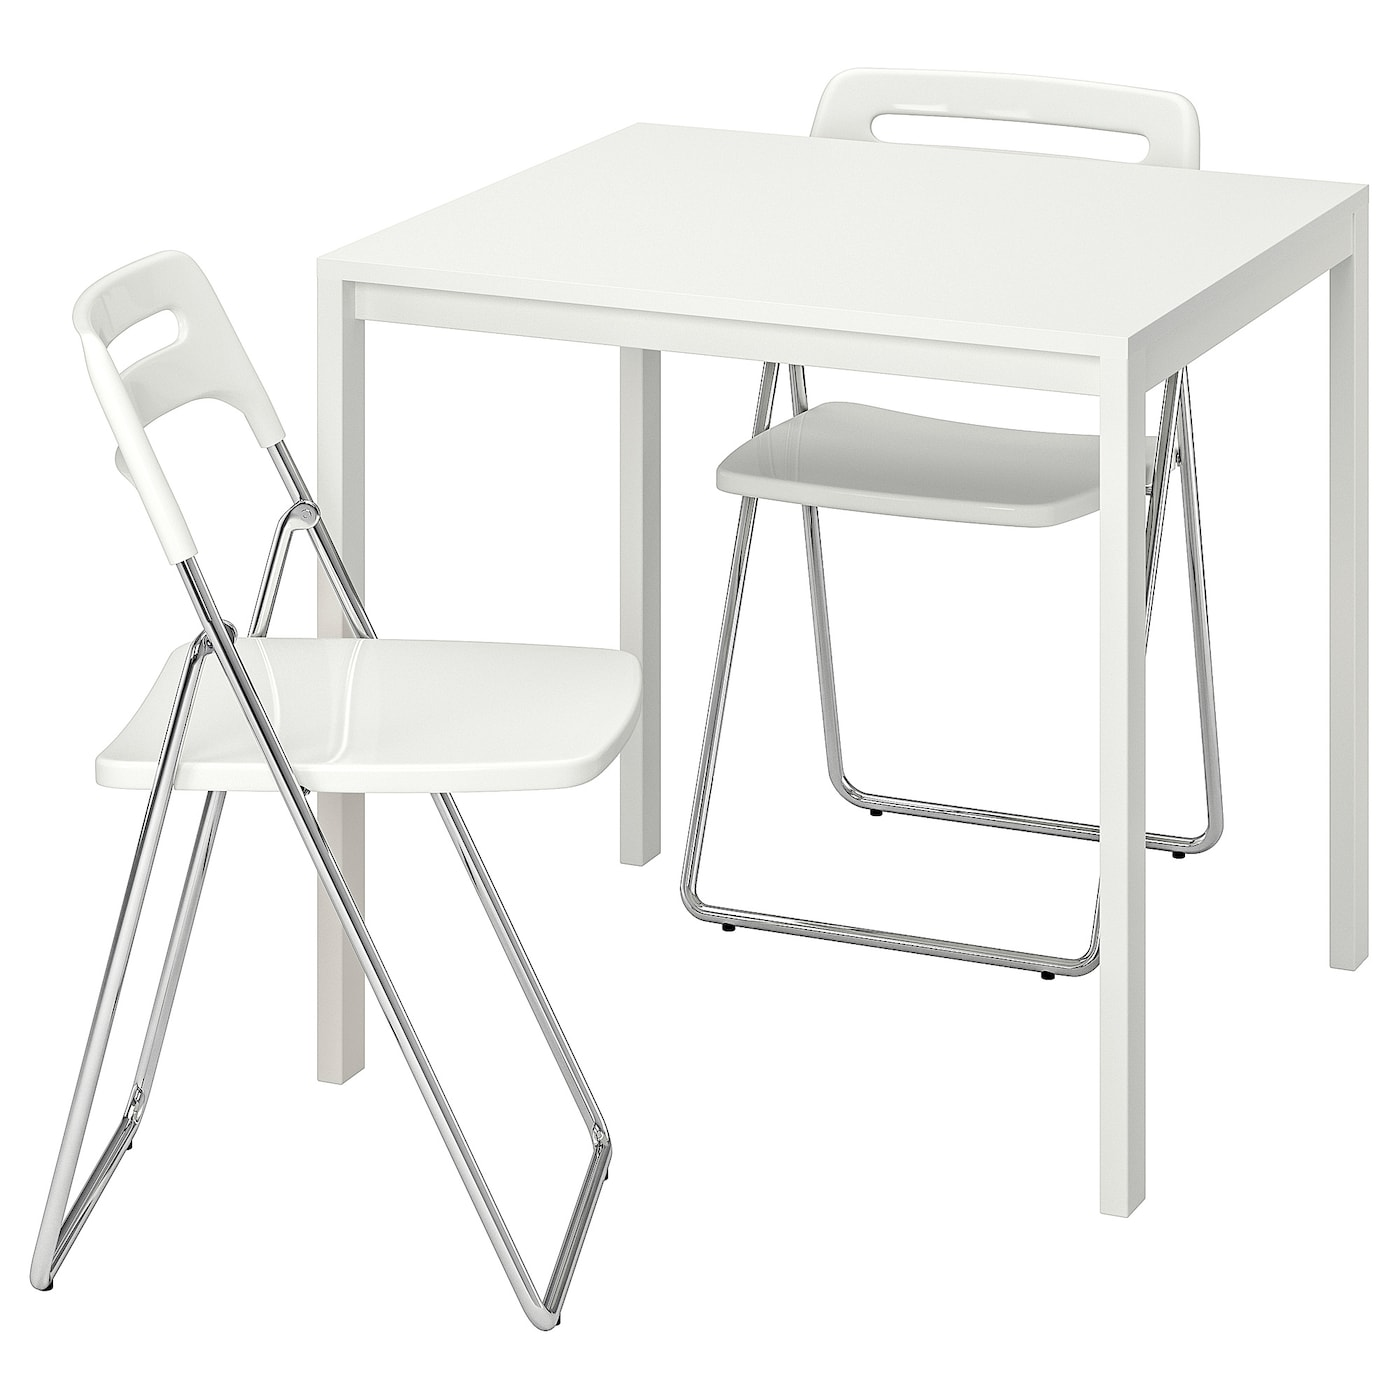 - MELLTORP / NISSE White, White, Table And 2 Folding Chairs - IKEA